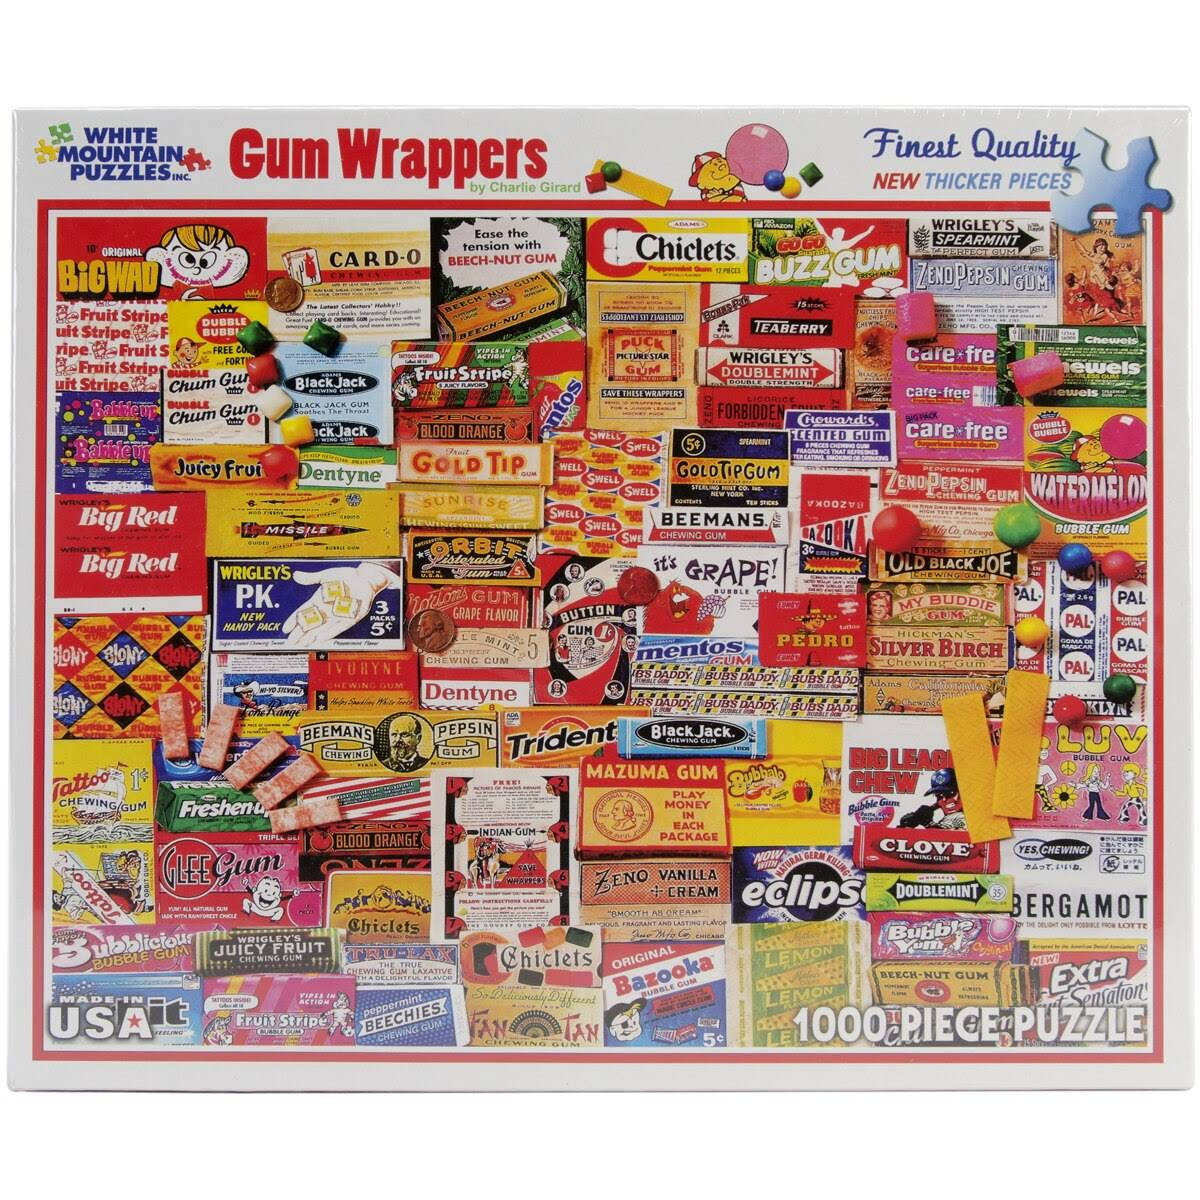 White Mountain Puzzles Jigsaw Puzzle - Gum Wrappers, 1000pcs